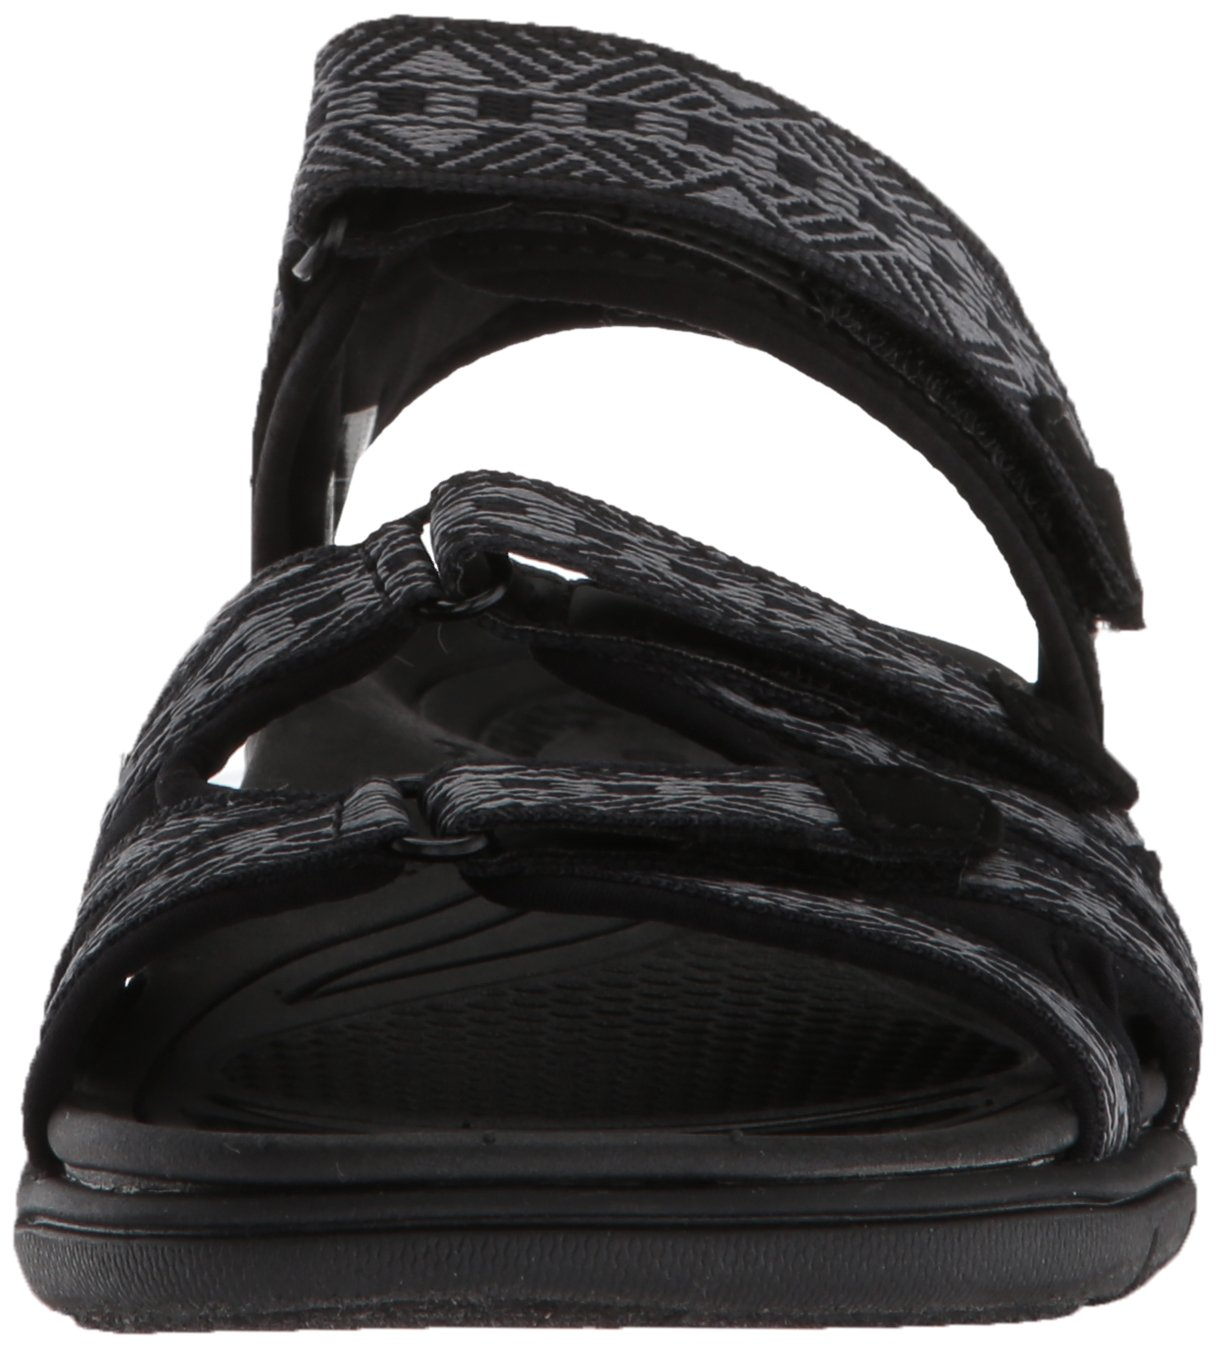 Ryka Women's Savannah 5 Sandal B01KWH6932 5 Savannah B(M) US|Black/Grey d97e41